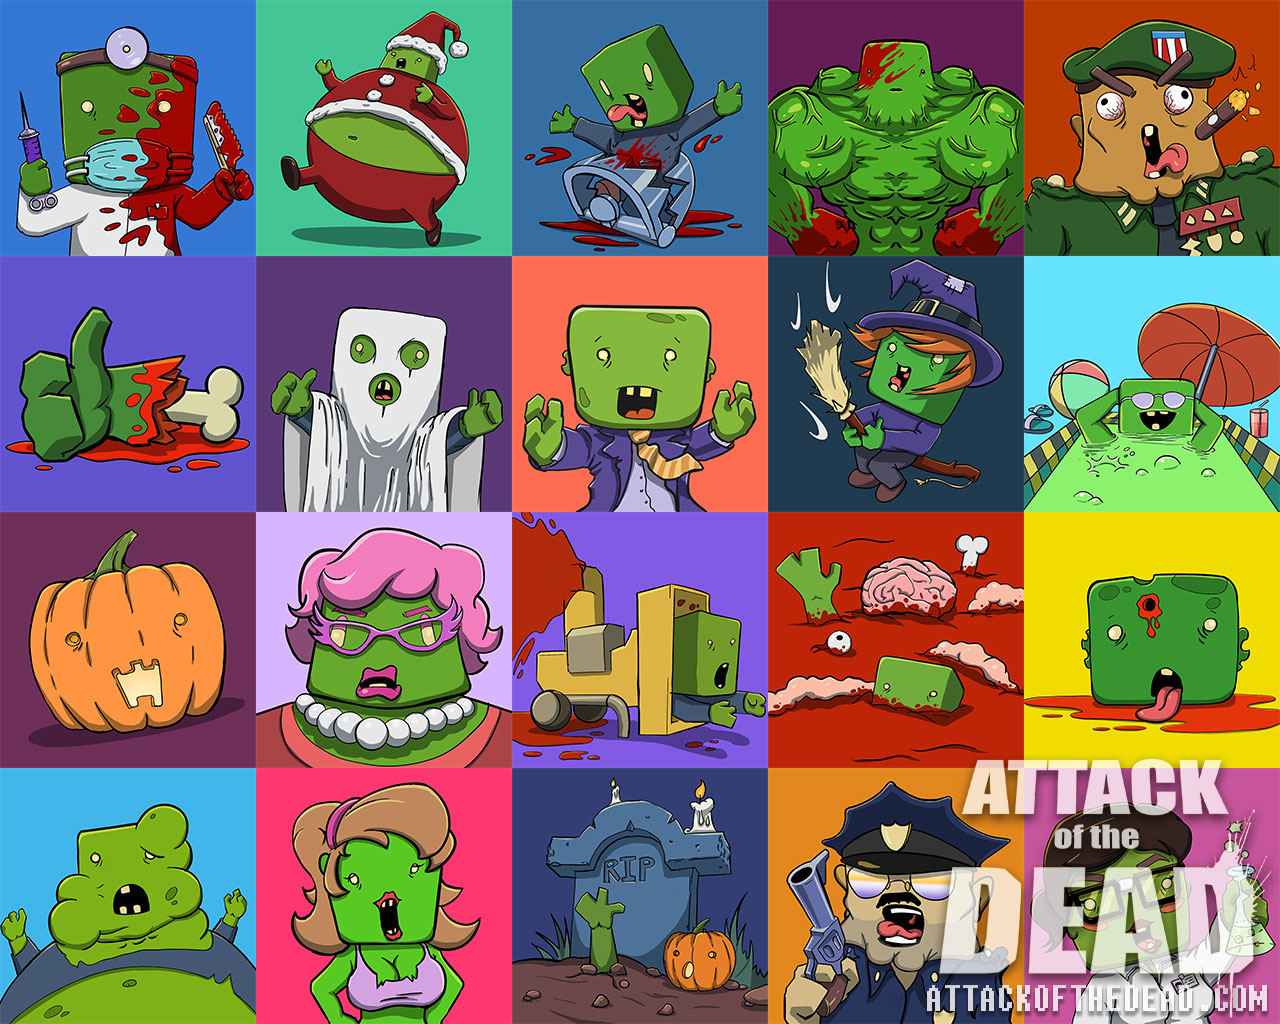 attackofthedead com avatars